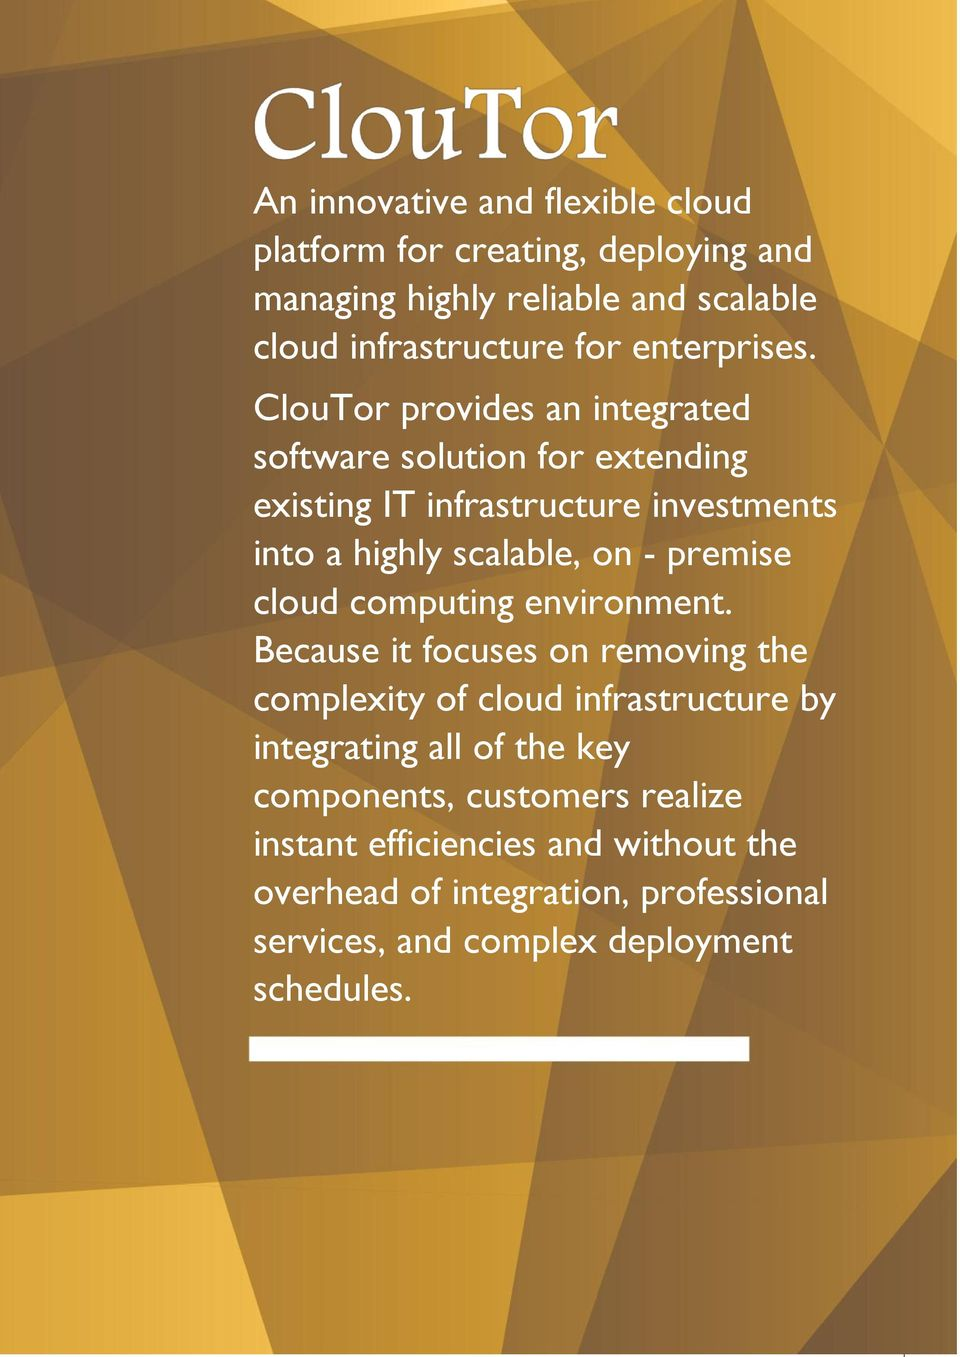 ClouTor provides an integrated software solution for extending existing IT infrastructure investments into a highly scalable, on - premise